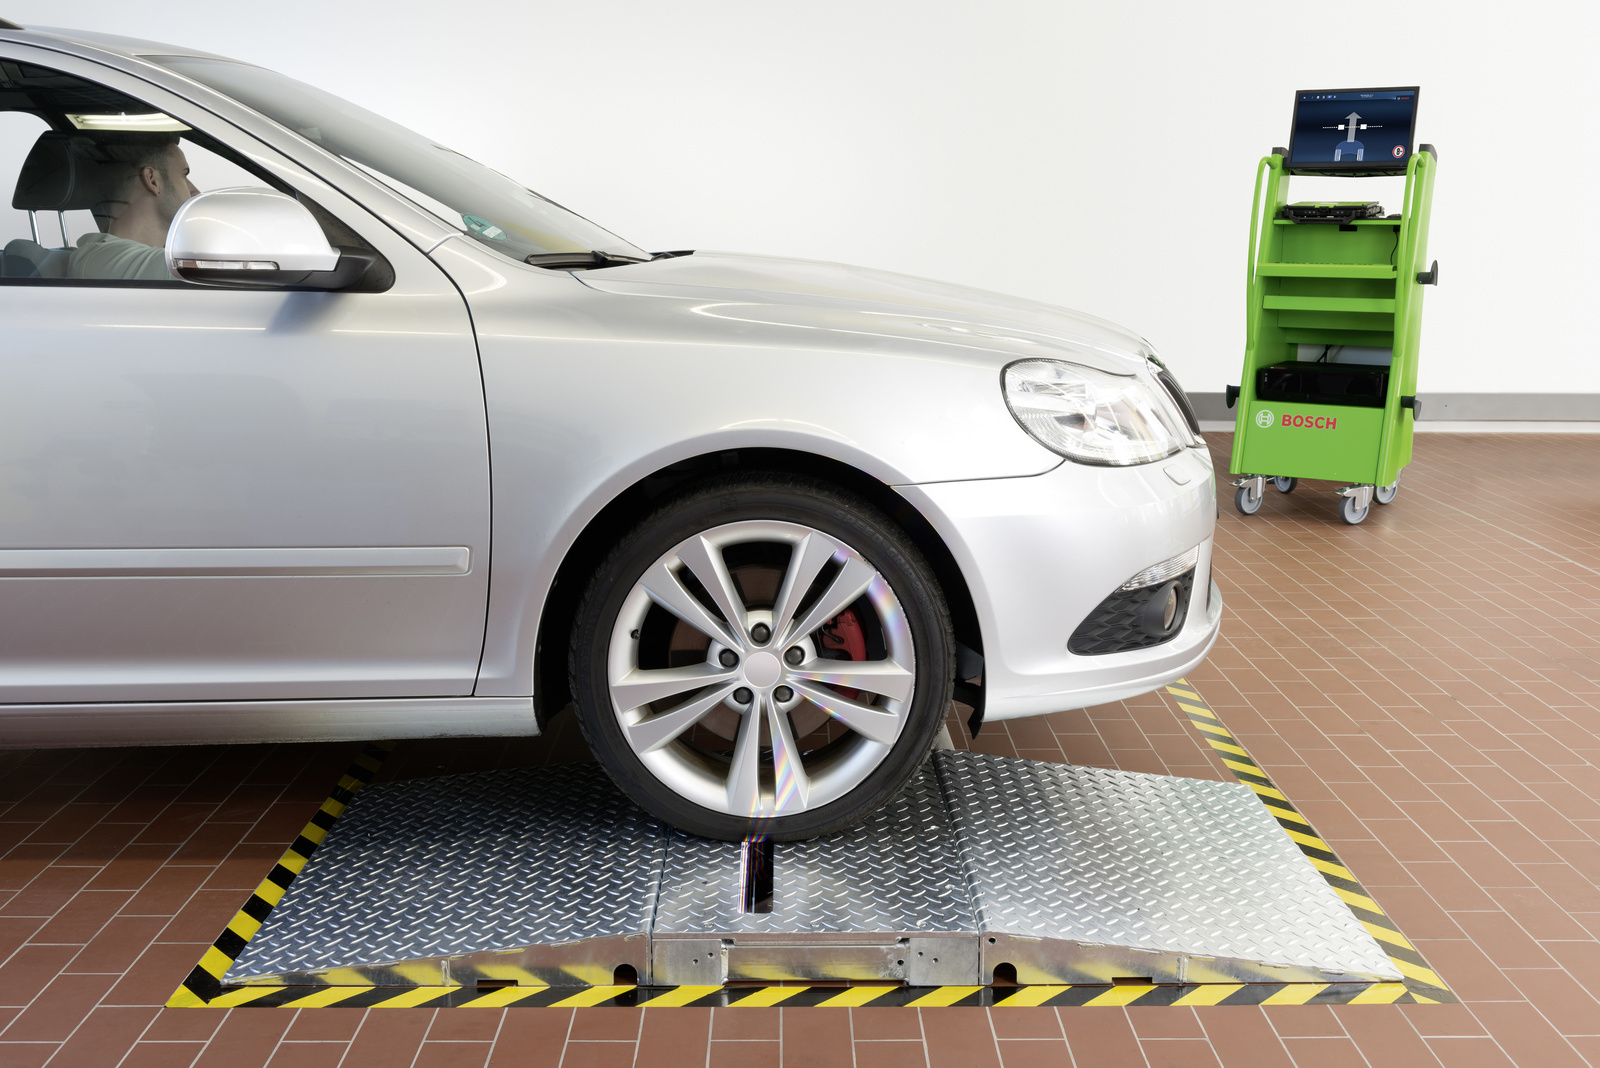 Automatic measurement of the tire tread depth at workshop checks